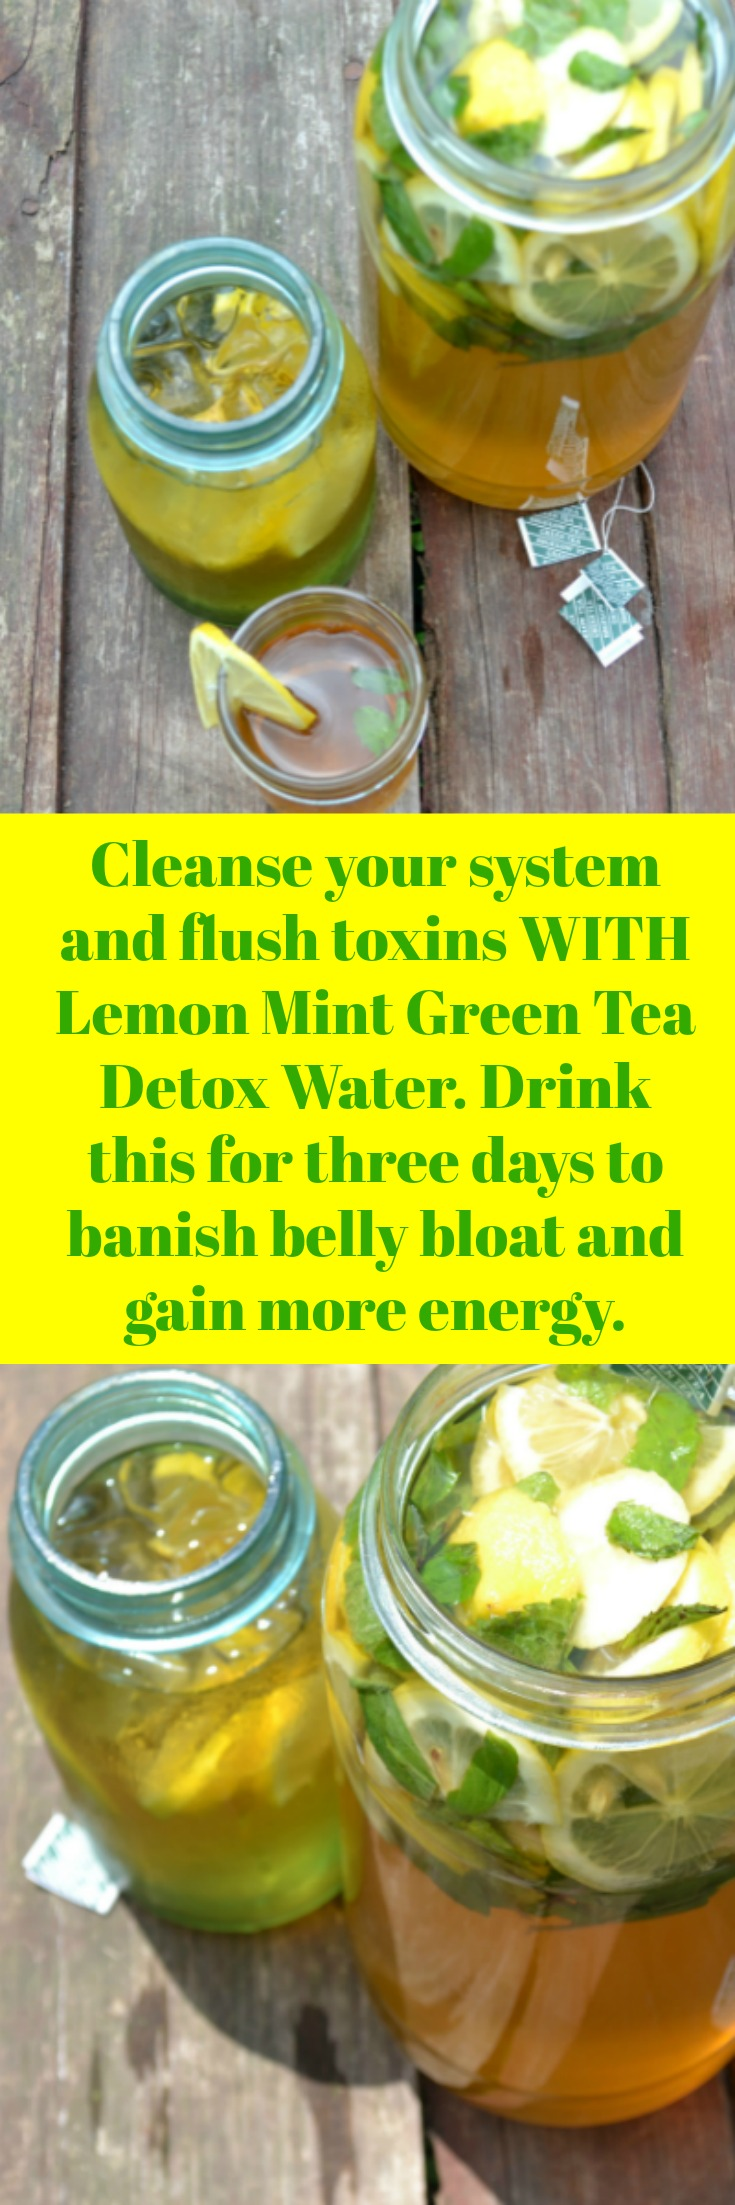 How to lose Belly Bloat! Drink <strong>Green Tea Lemon Mint Detox Water for Cleansing</strong> and to help banish your belly bloat. Drink first thing in the morning and then again at lunch time. Kick start your metabolism and jump start your weight loss goals. You will actually gain more energy and feel amazingly less stressed when you drink more infused water.  We love homemade weight loss detox drinks!